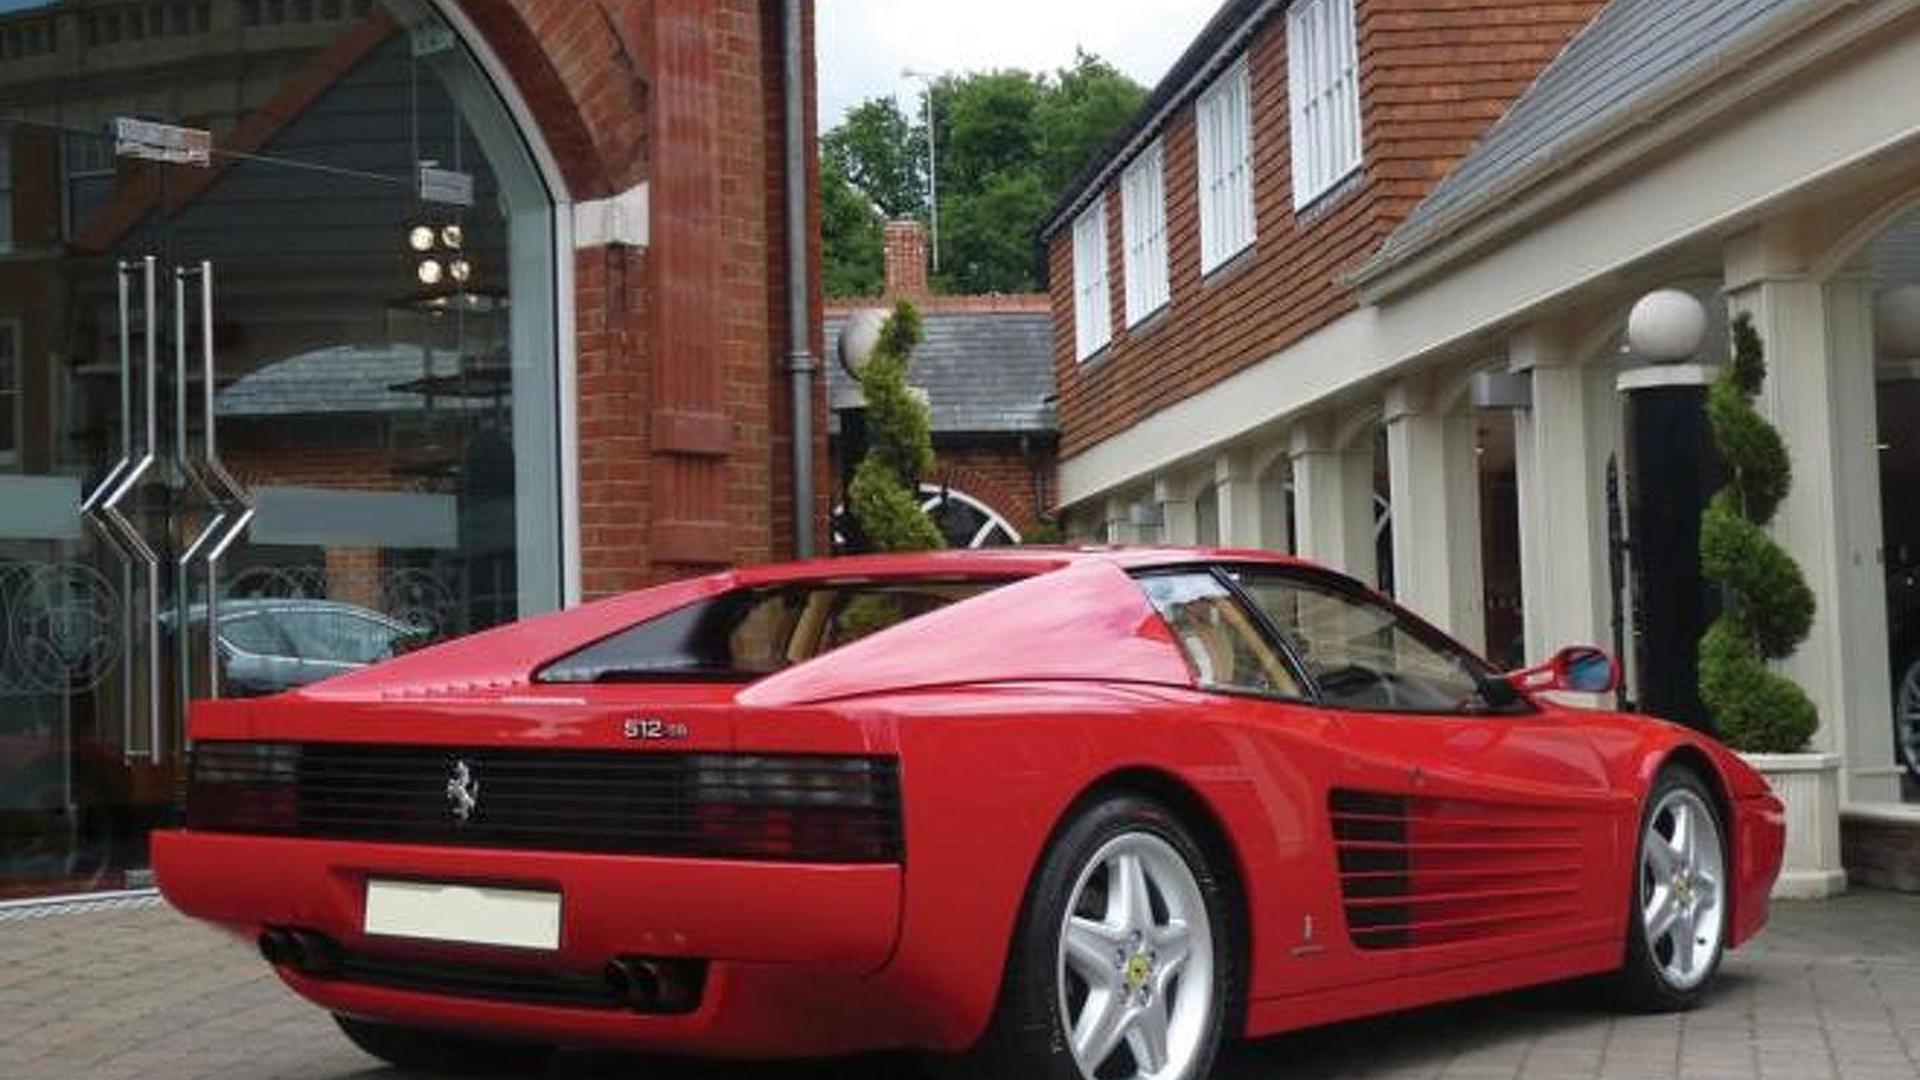 1991 Ferrari 512 TR formerly owned by Sir Elton John will be